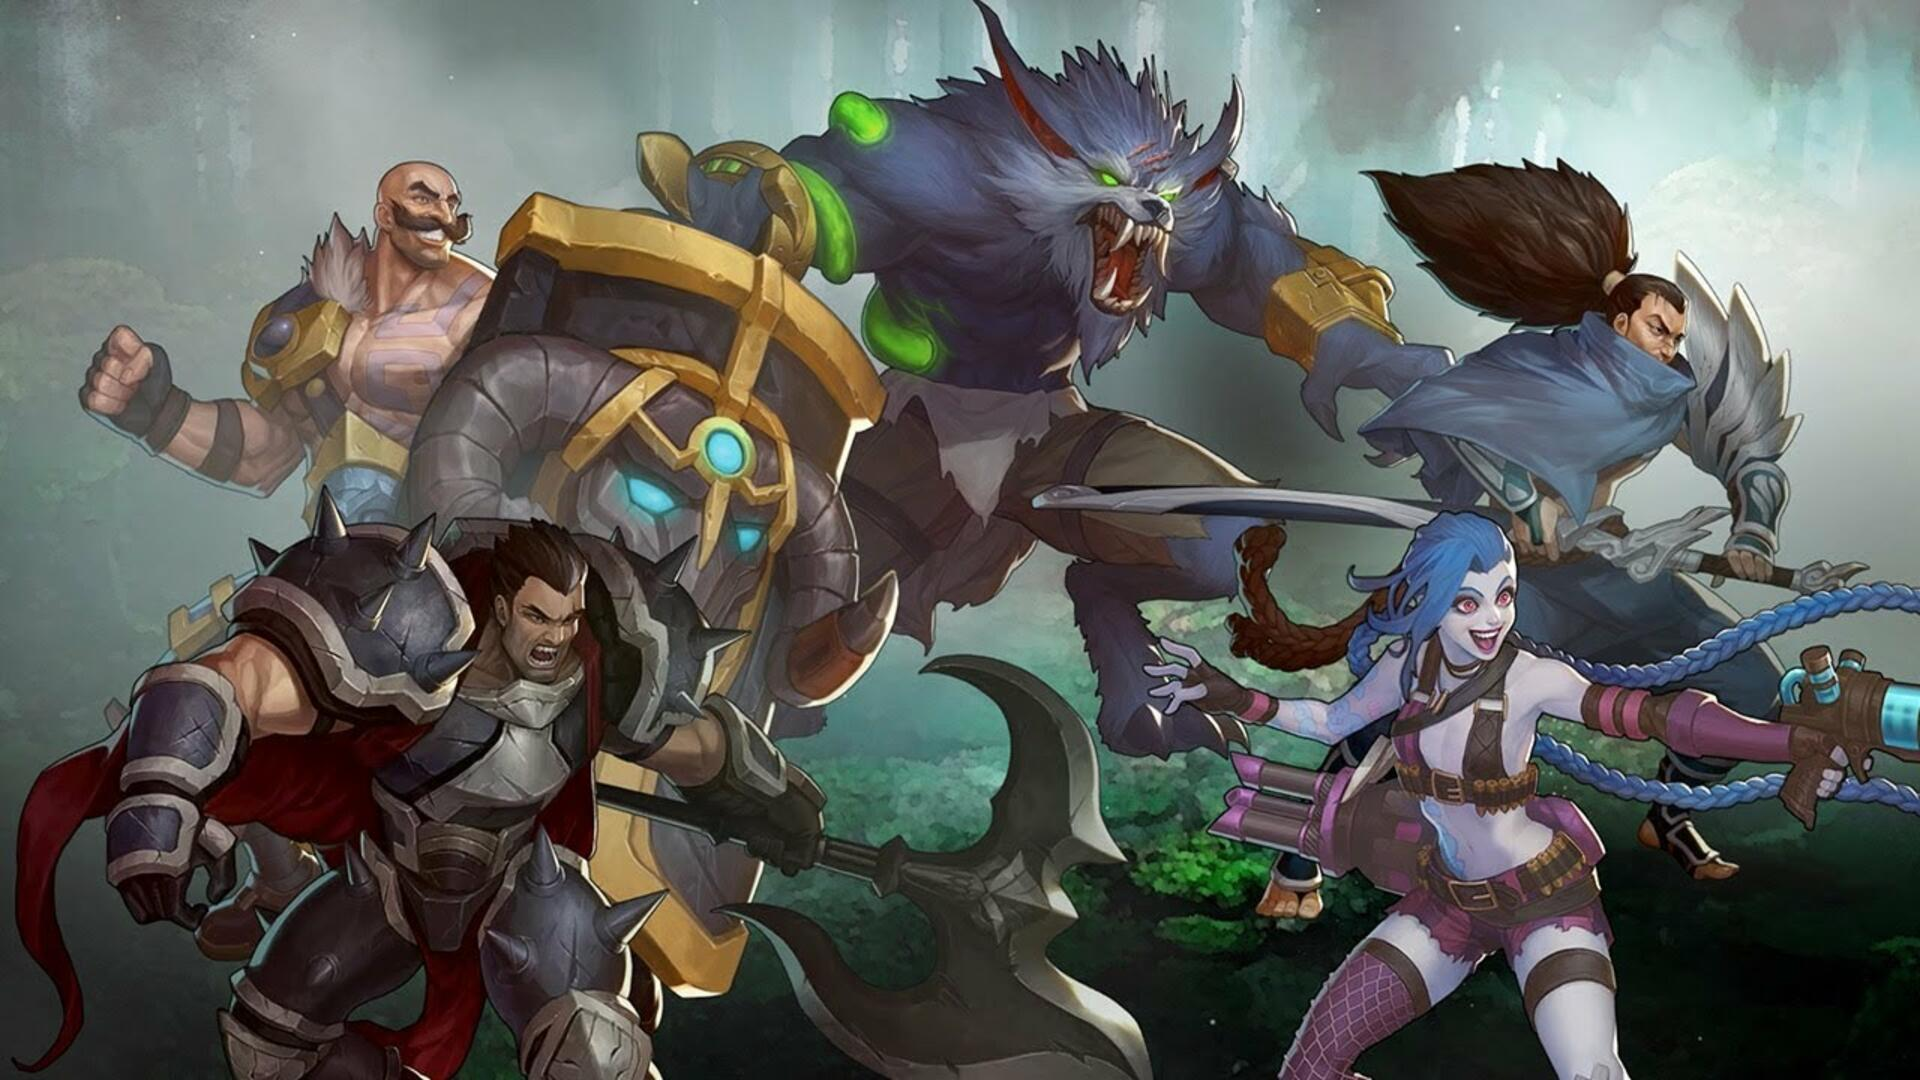 Report: Riot Games Working With Tencent To Develop Mobile League of Legends